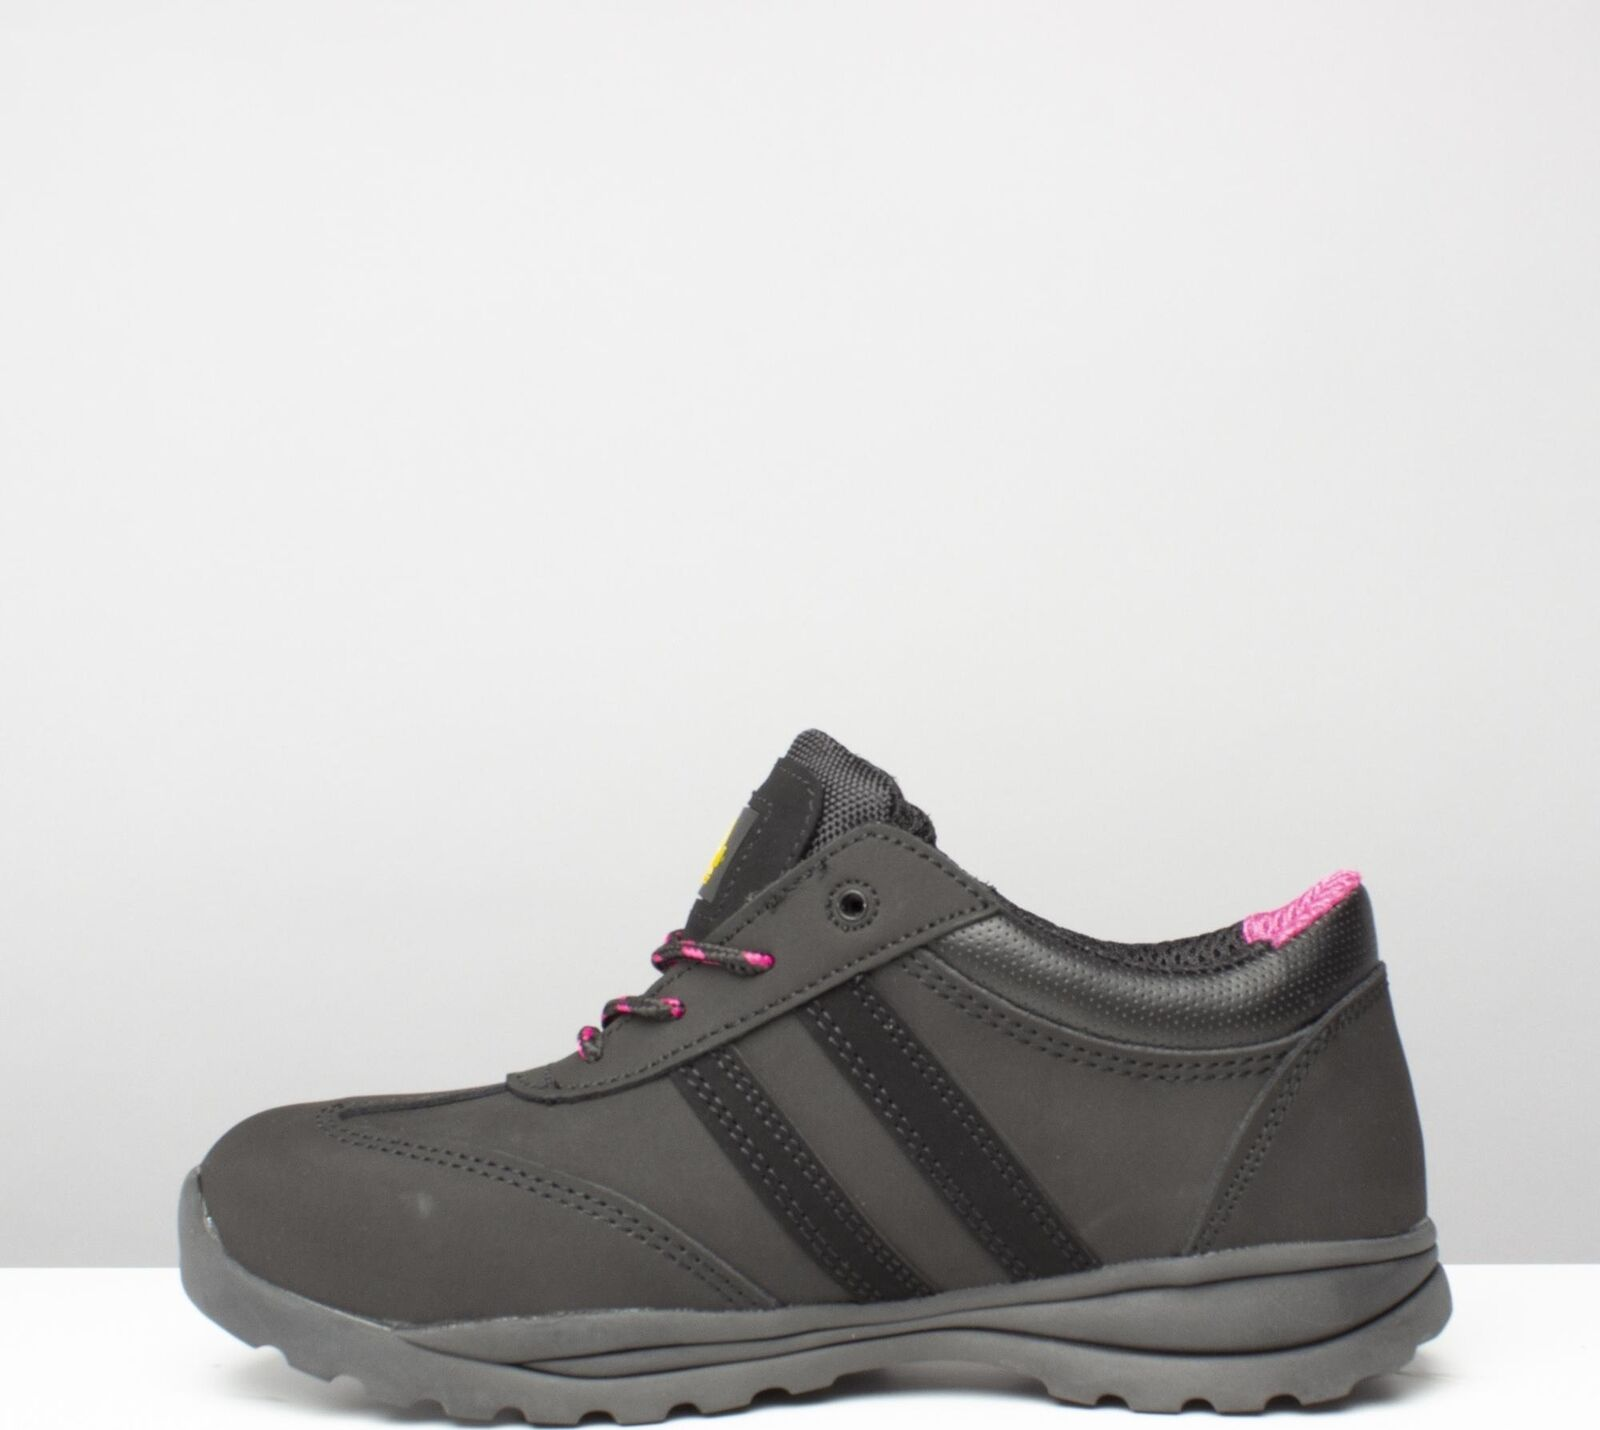 Amblers Safety FS706 SOPHIE SHOE Ladies Ladies Ladies Womens Leather Safety Trainers Black 3a75ab